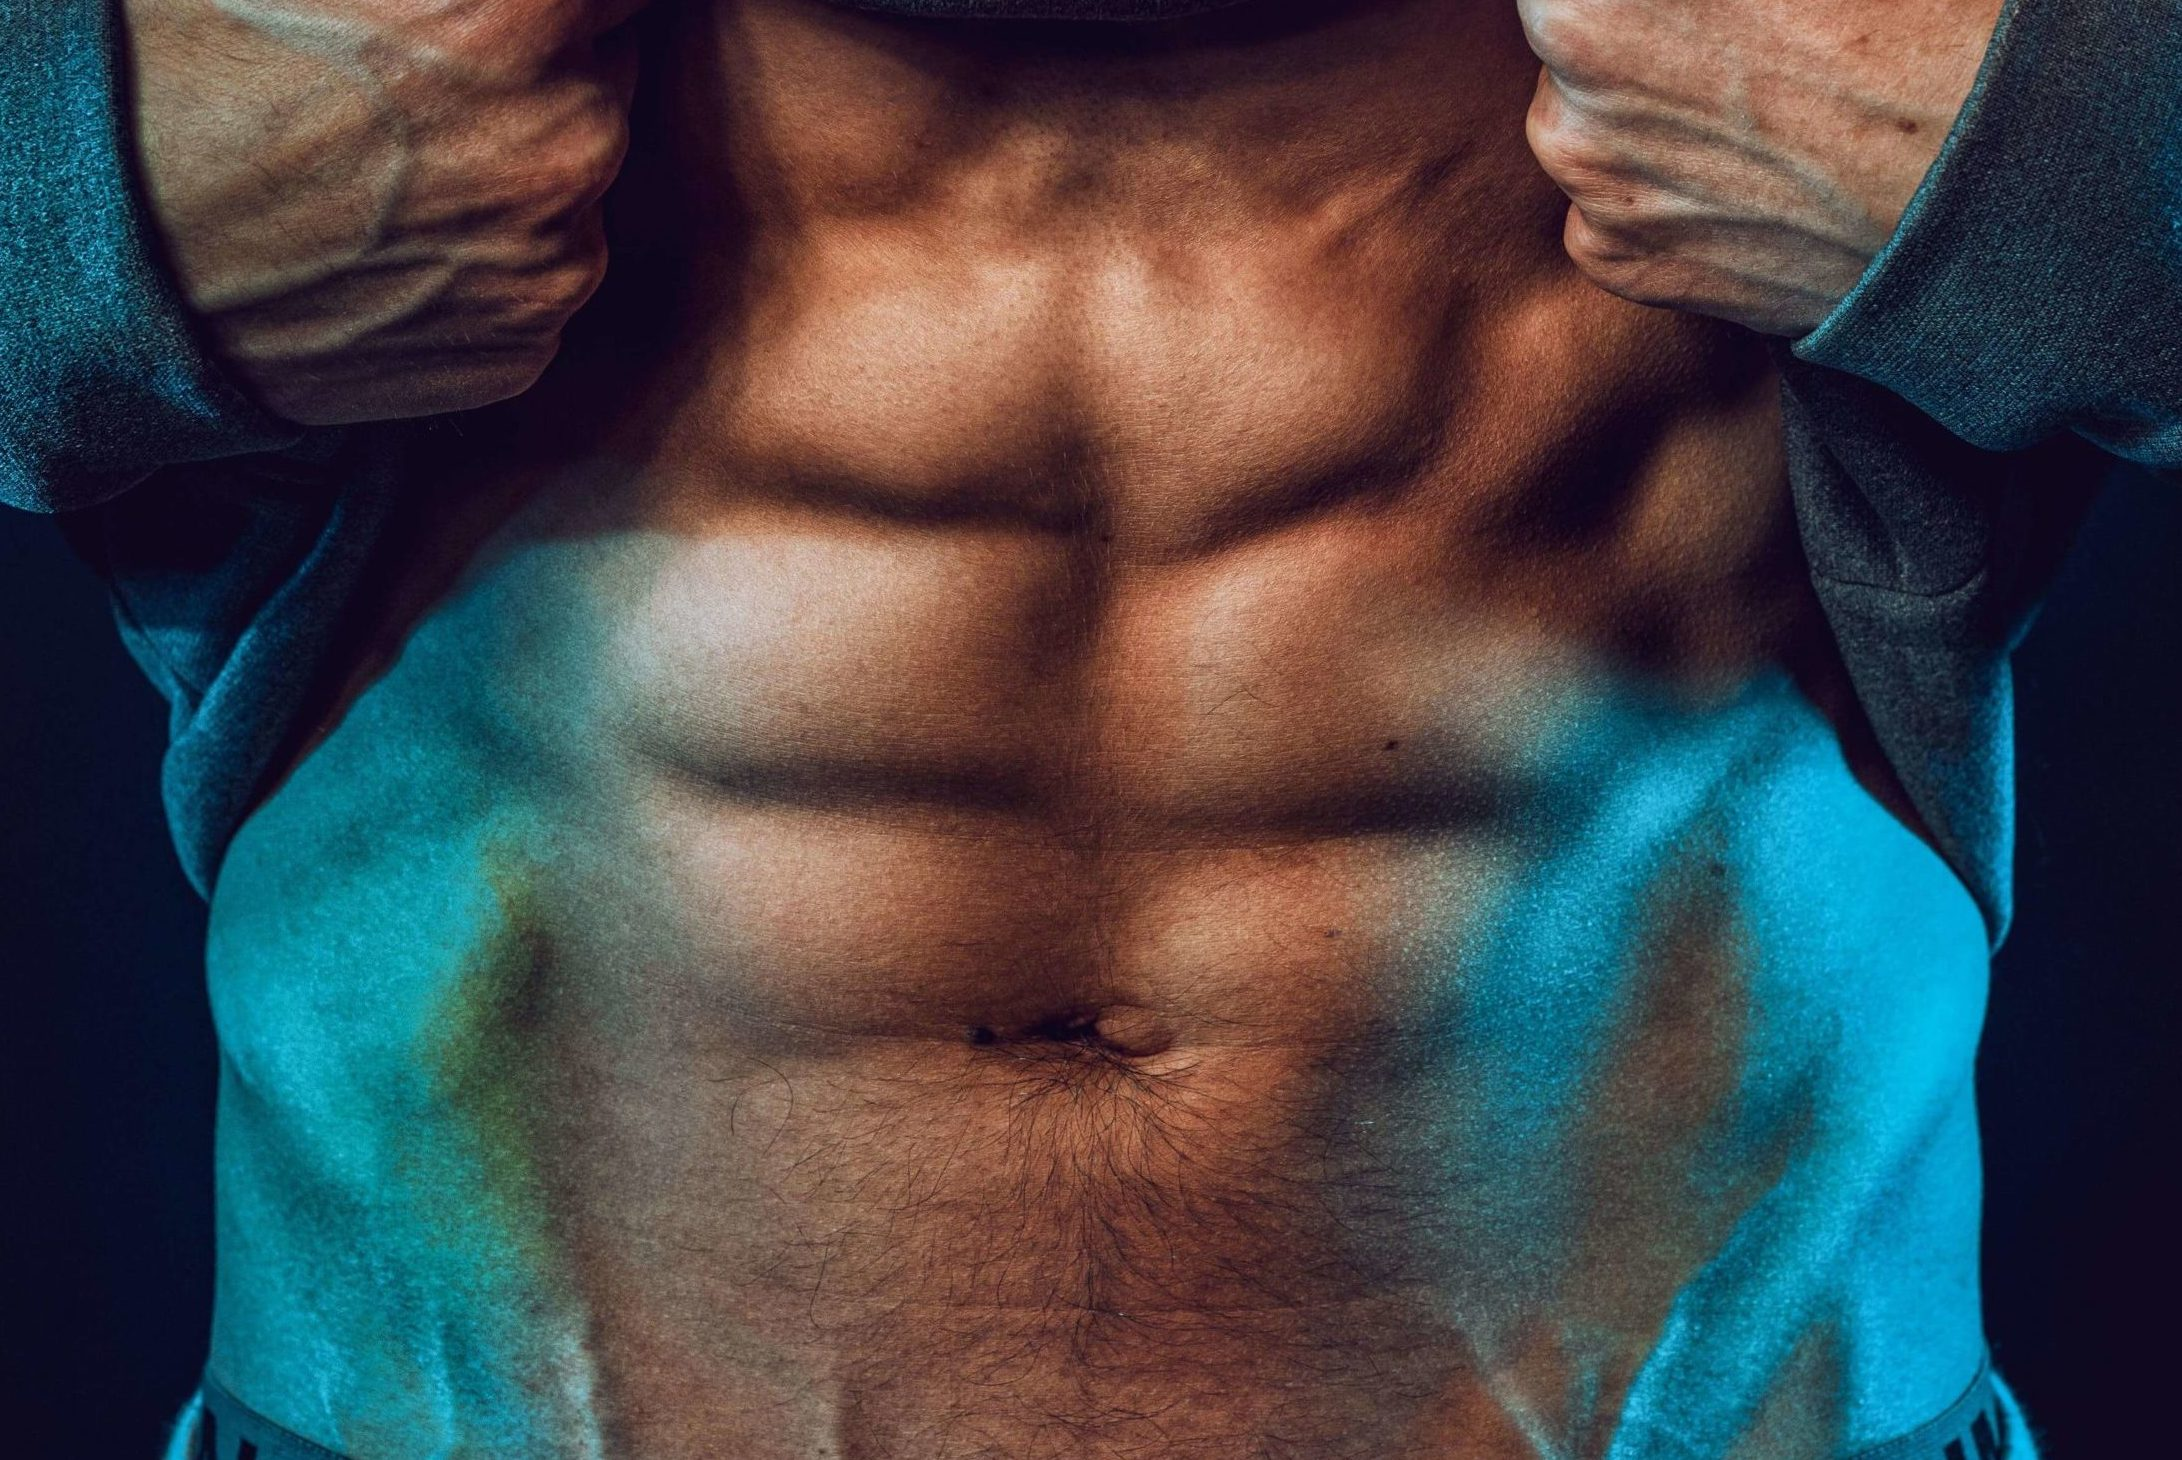 Close Up of Abs